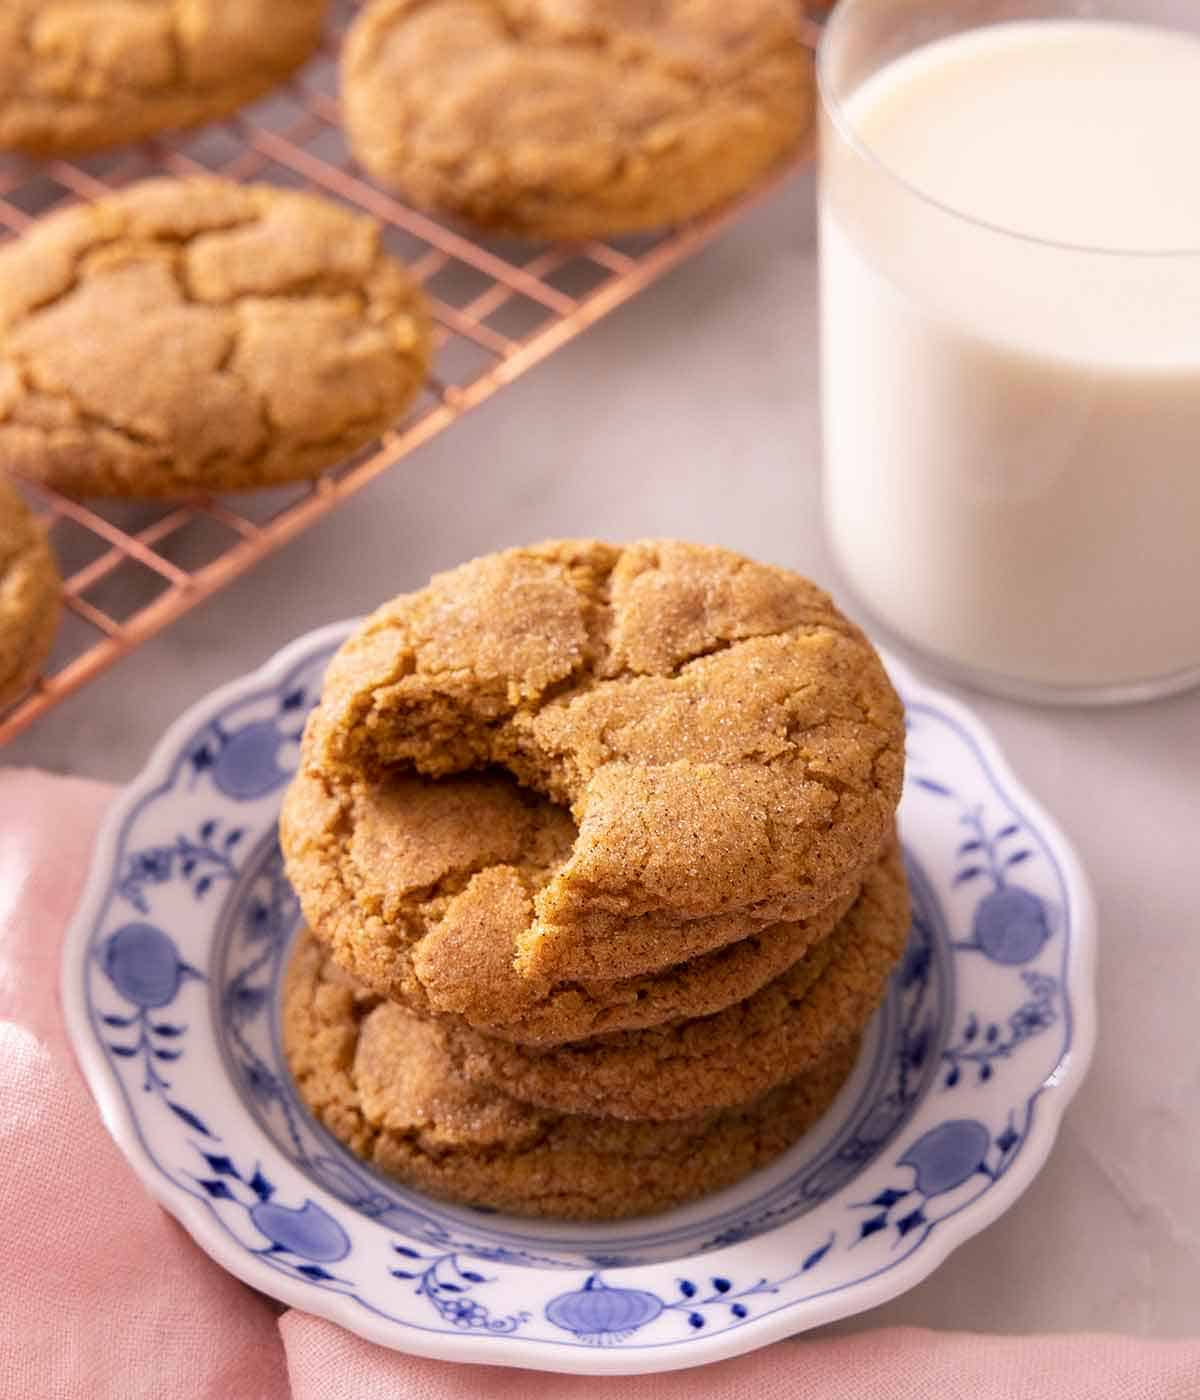 A plate with a stack of pumpkin snickerdoodles with one cookie missing a bite, beside a glass of milk.